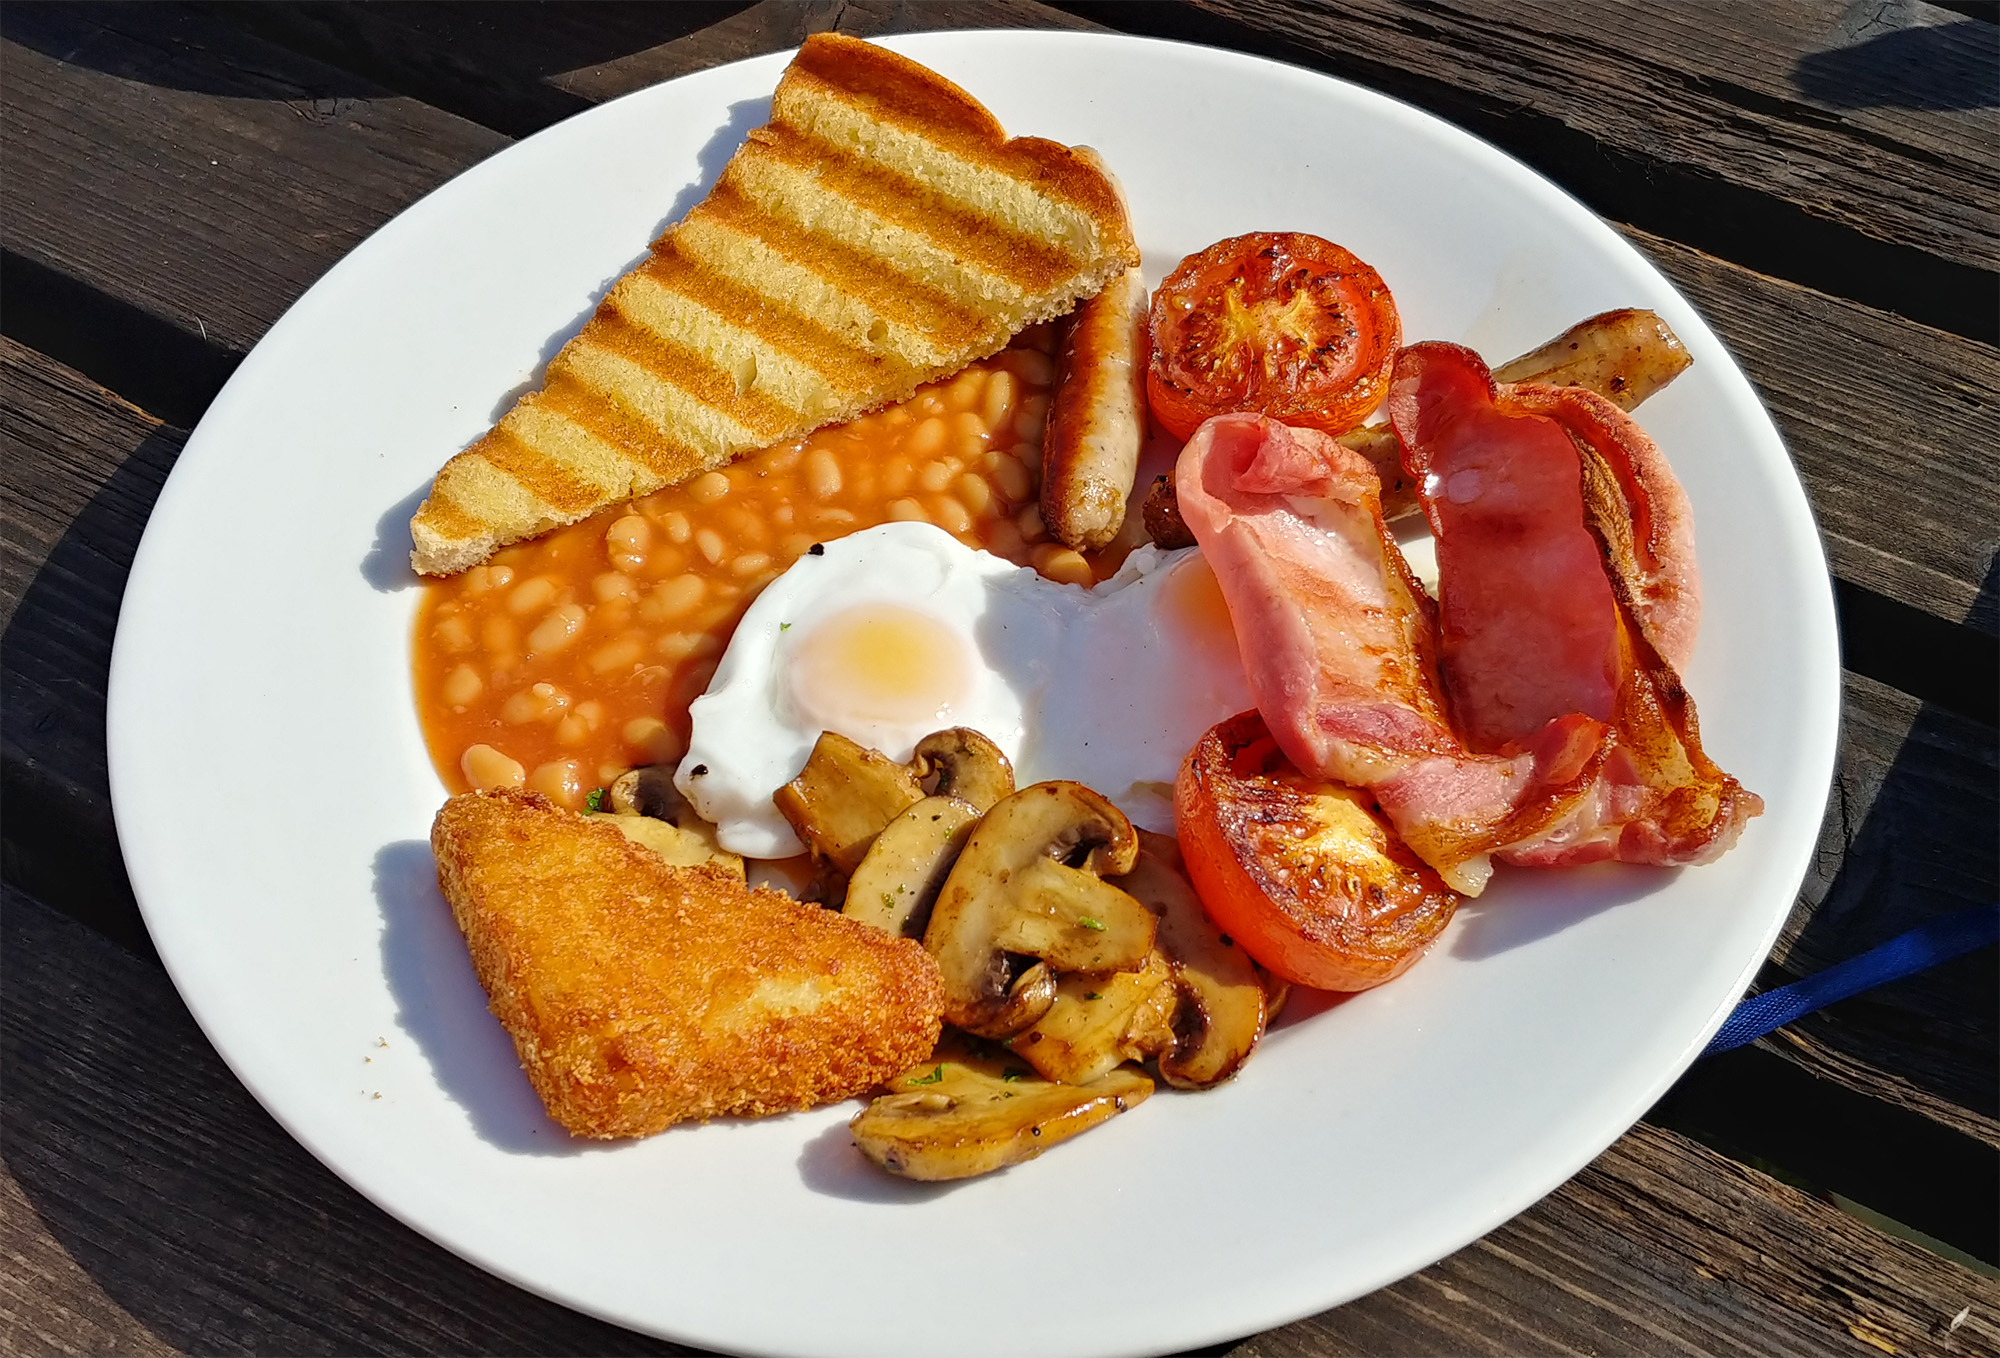 The best full English breakfast I have ever had in my life. The fried bread was an absolute taste sensation. Thoroughly recommended.